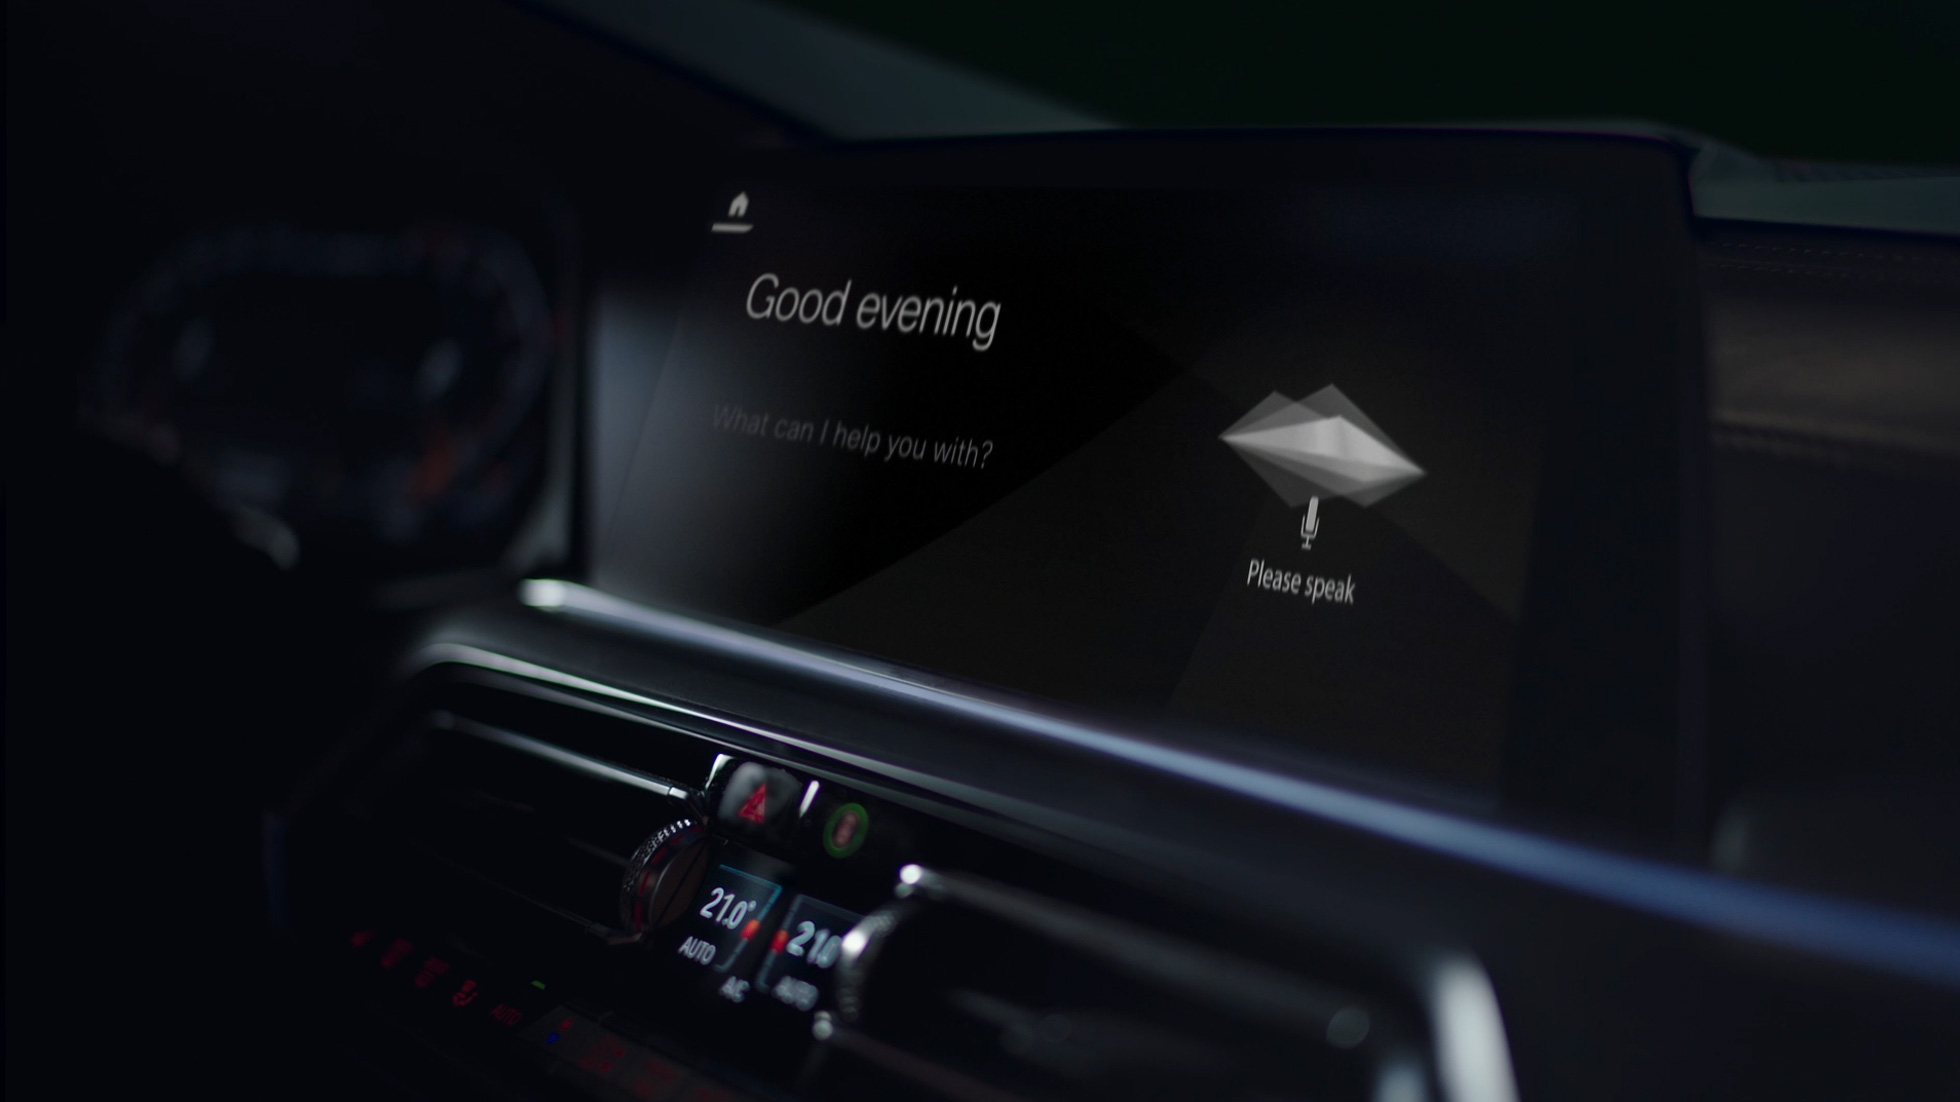 Intelligent Personal Assistant: Close-up of iDrive Displays